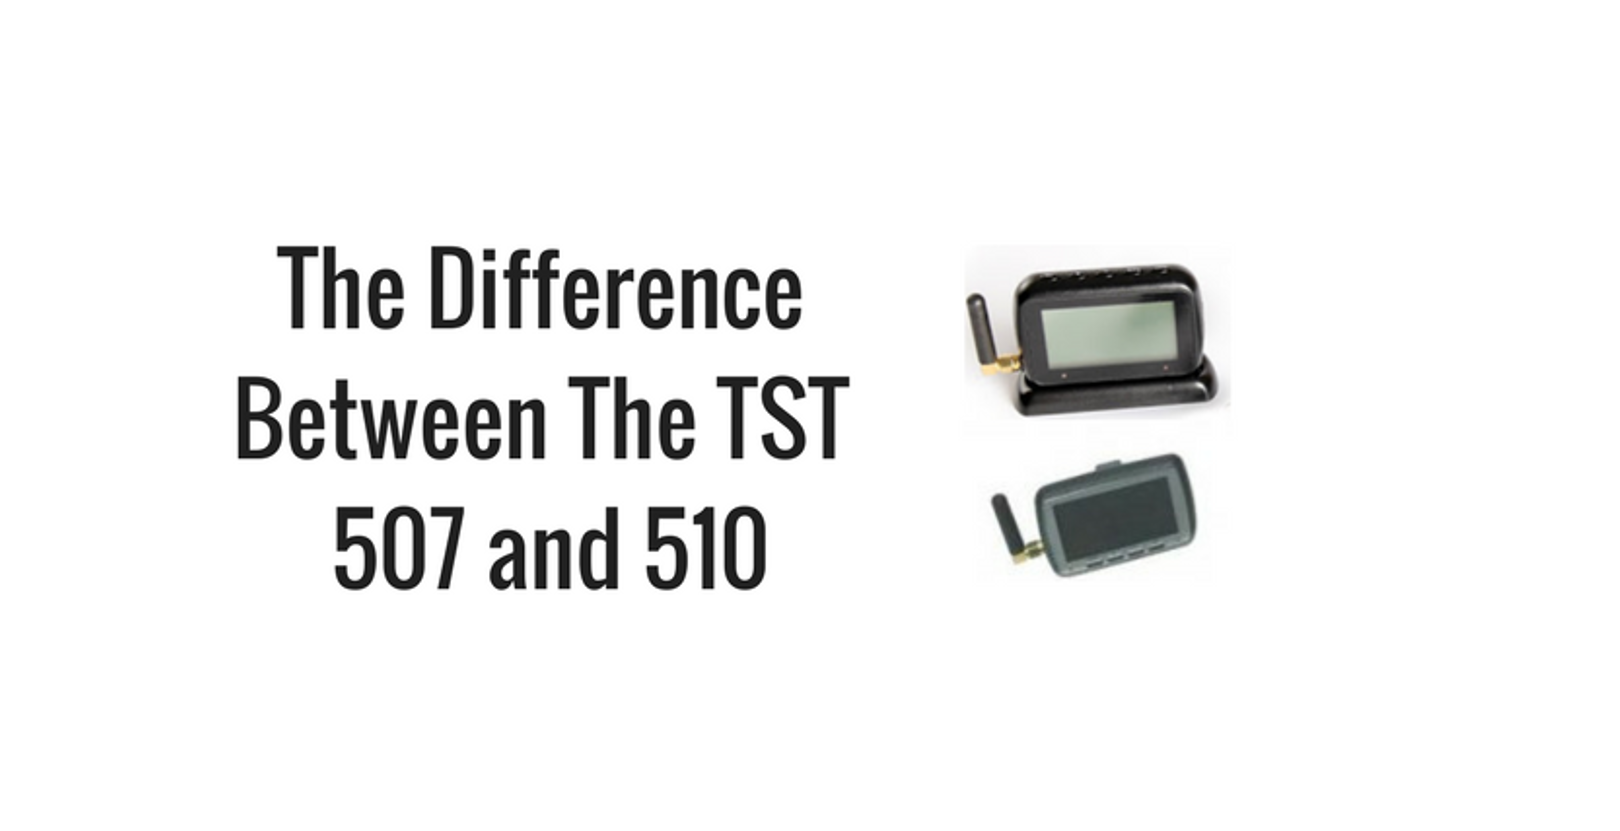 What Are The Differences Between The Tst 507 And Tst 510